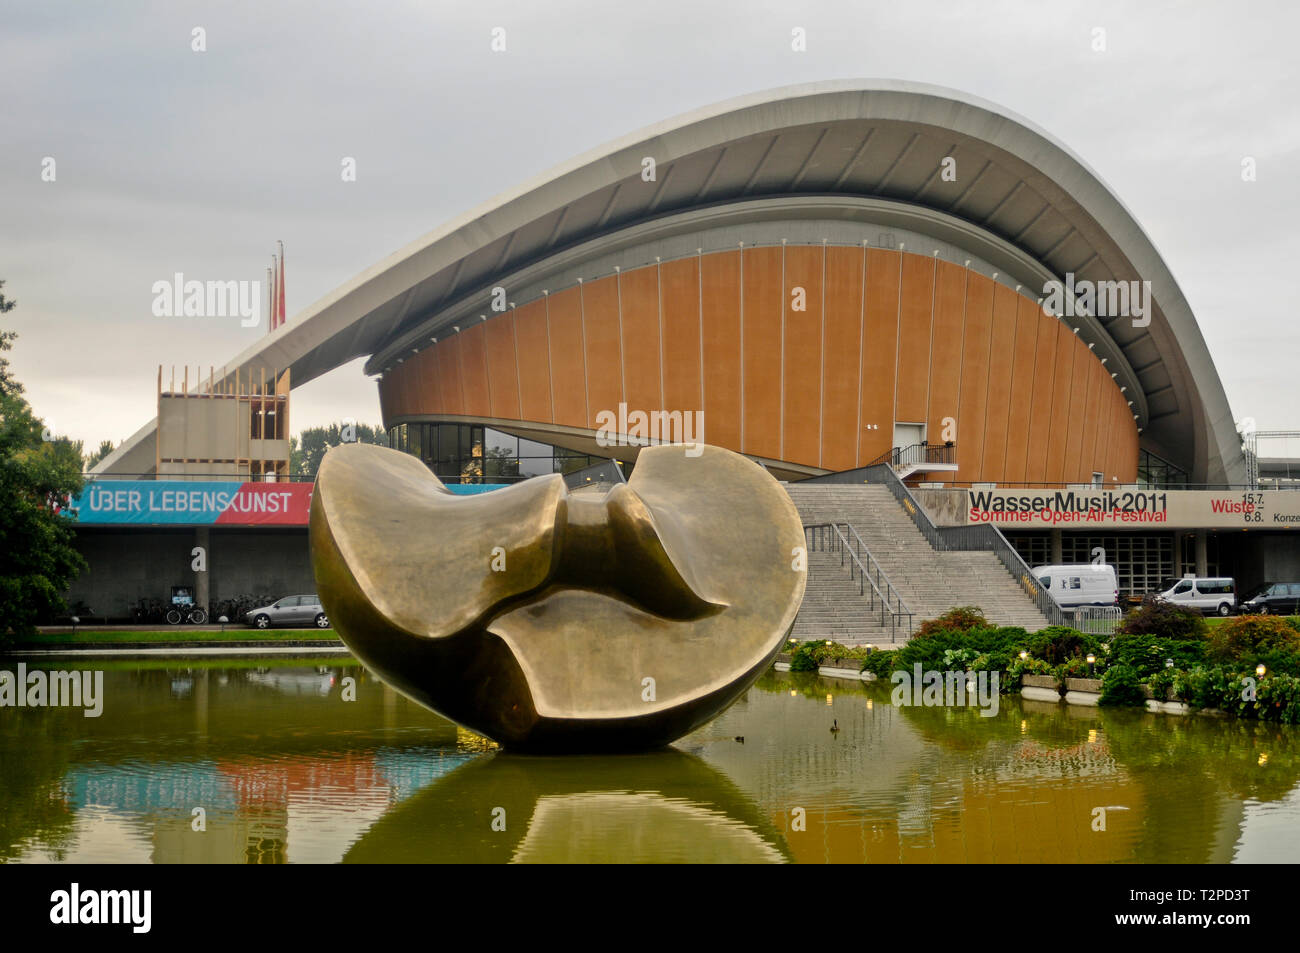 Haus der Kulturen der Welt ('House of the World's Cultures'), with the Henry Moore sculpture in the front. Berlin, Germany - Stock Image